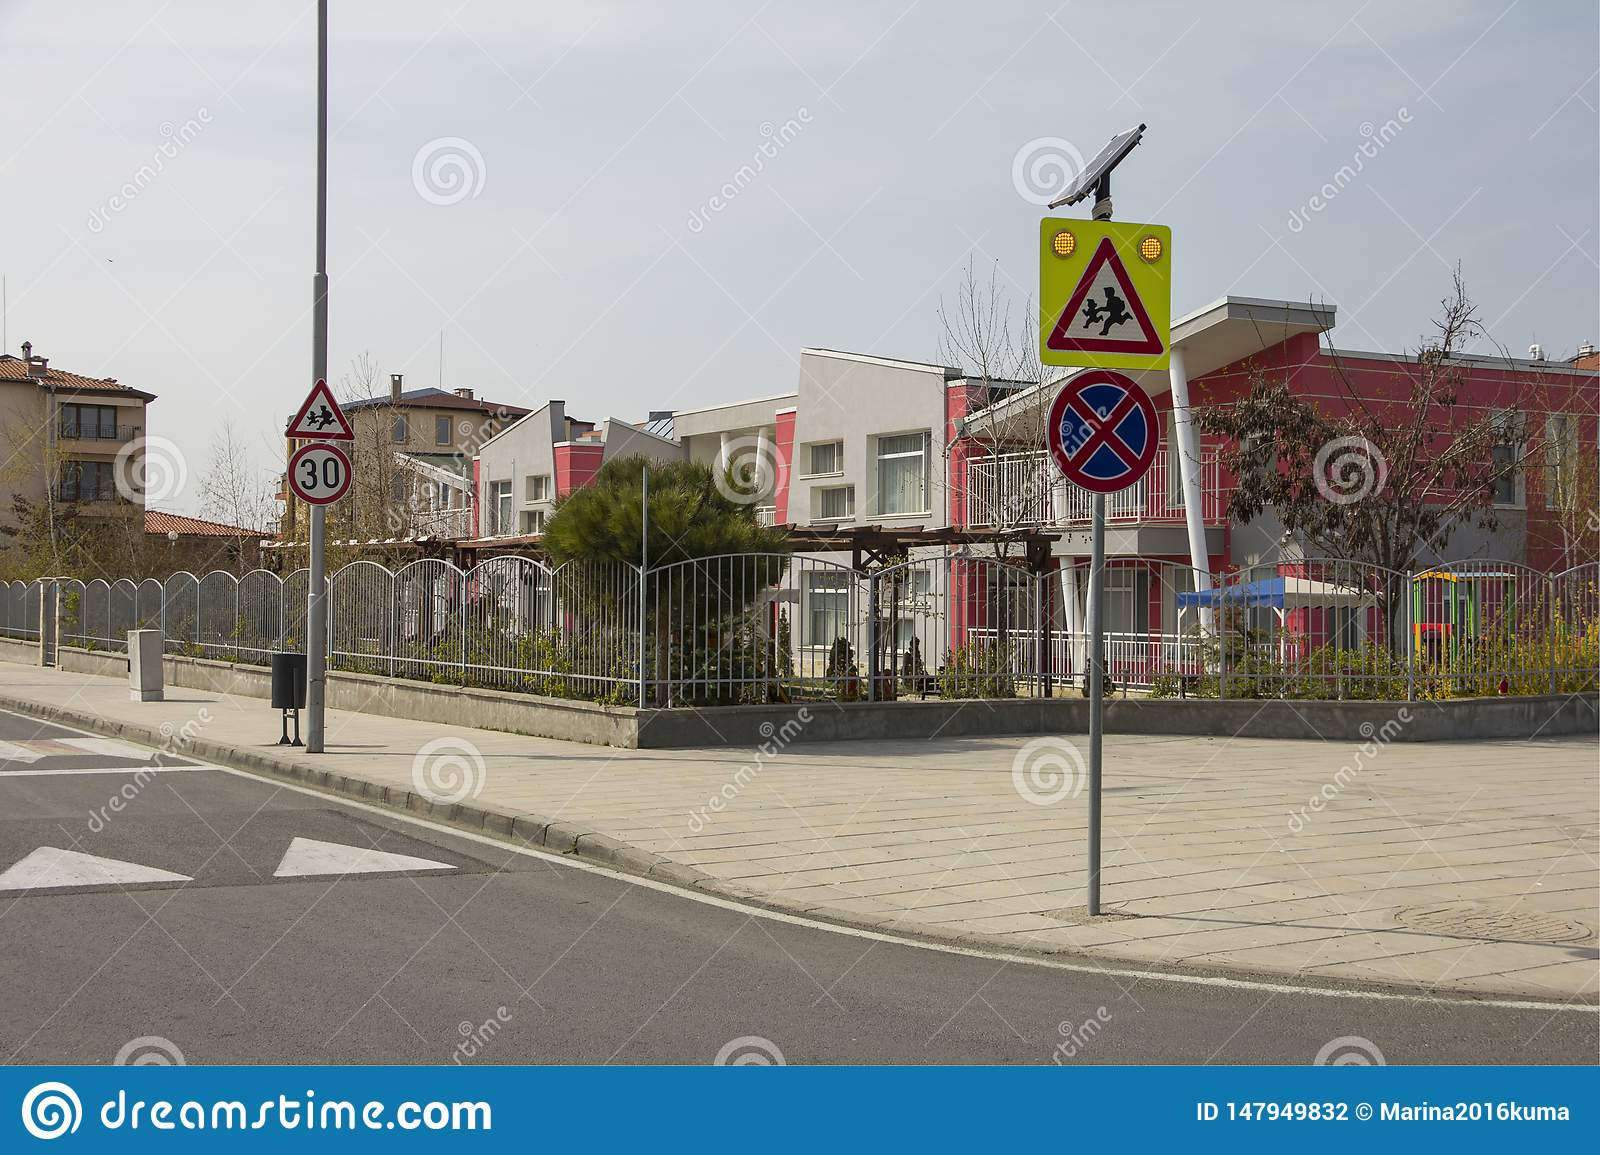 City street with a pedestrian crossing, a speed bump and a caution sign `children` near a beautiful kindergarten.